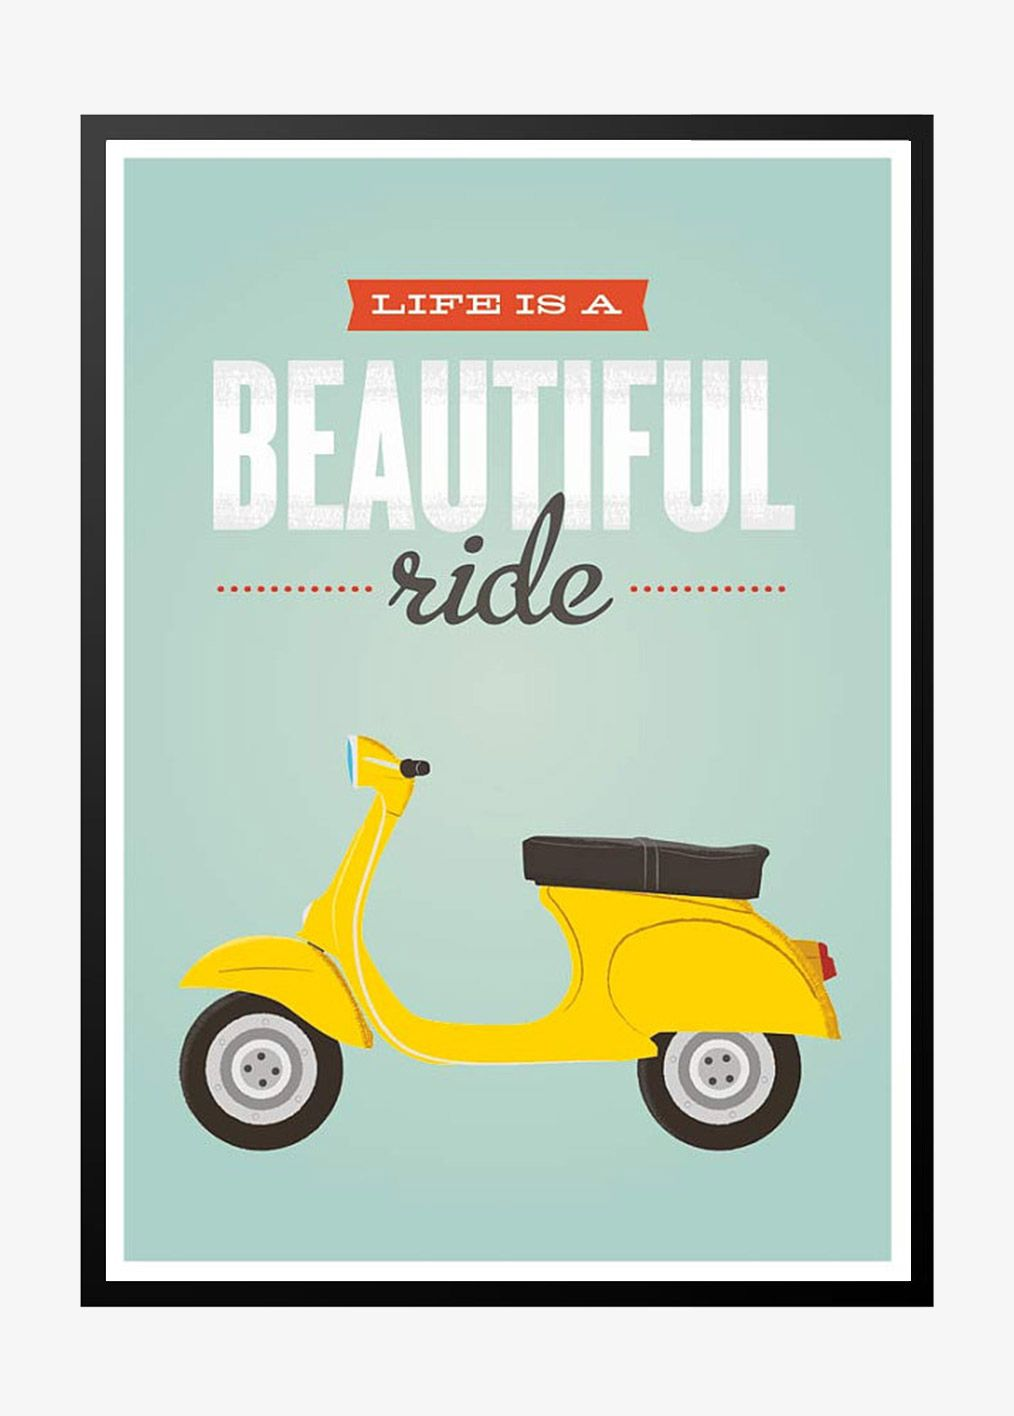 retro plakater Life is a beautiful ride   Retro Plakat | Retro plakater  retro plakater